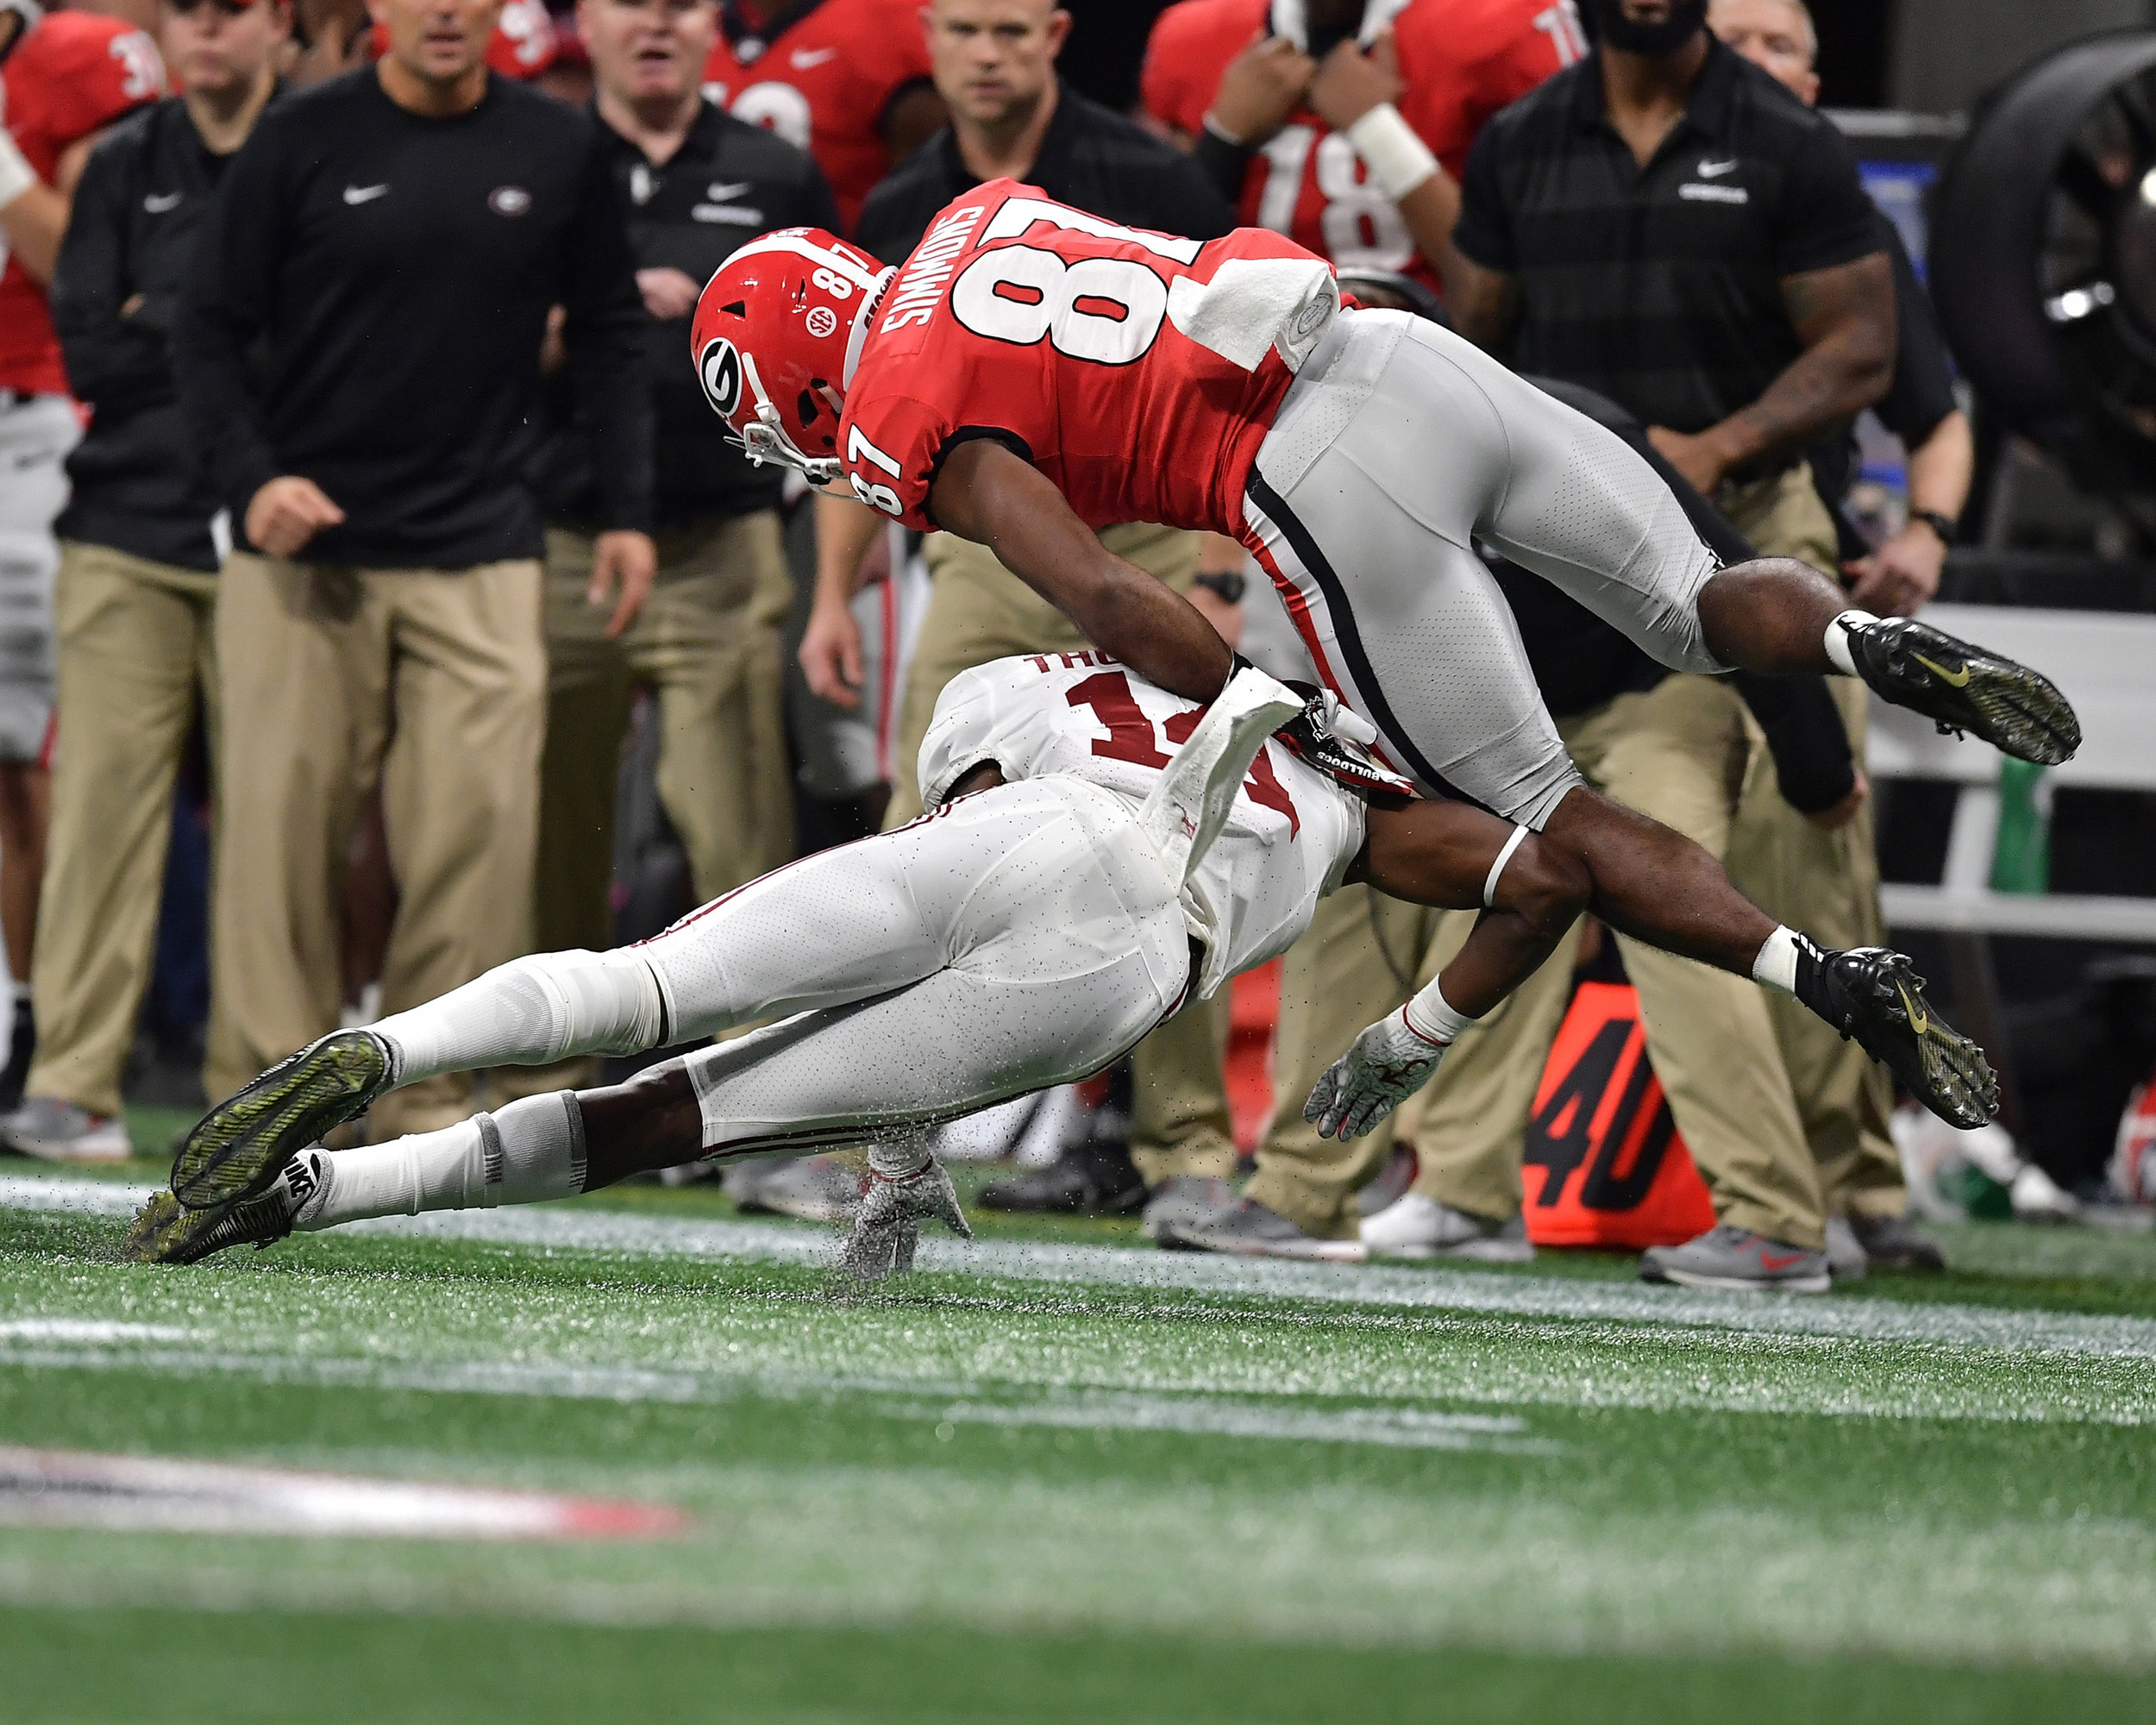 Alabama Crimson Tide defensive back Deionte Thompson (14) tackles Georgia Bulldogs wide receiver Tyler Simmons (87) in the first half of the 2018 SEC Championship football game at Mercedes-Benz Stadium in Atlanta, Ga., on Dec. 1, 2018. Alabama wins 35-28. (Photo by Lee Walls)